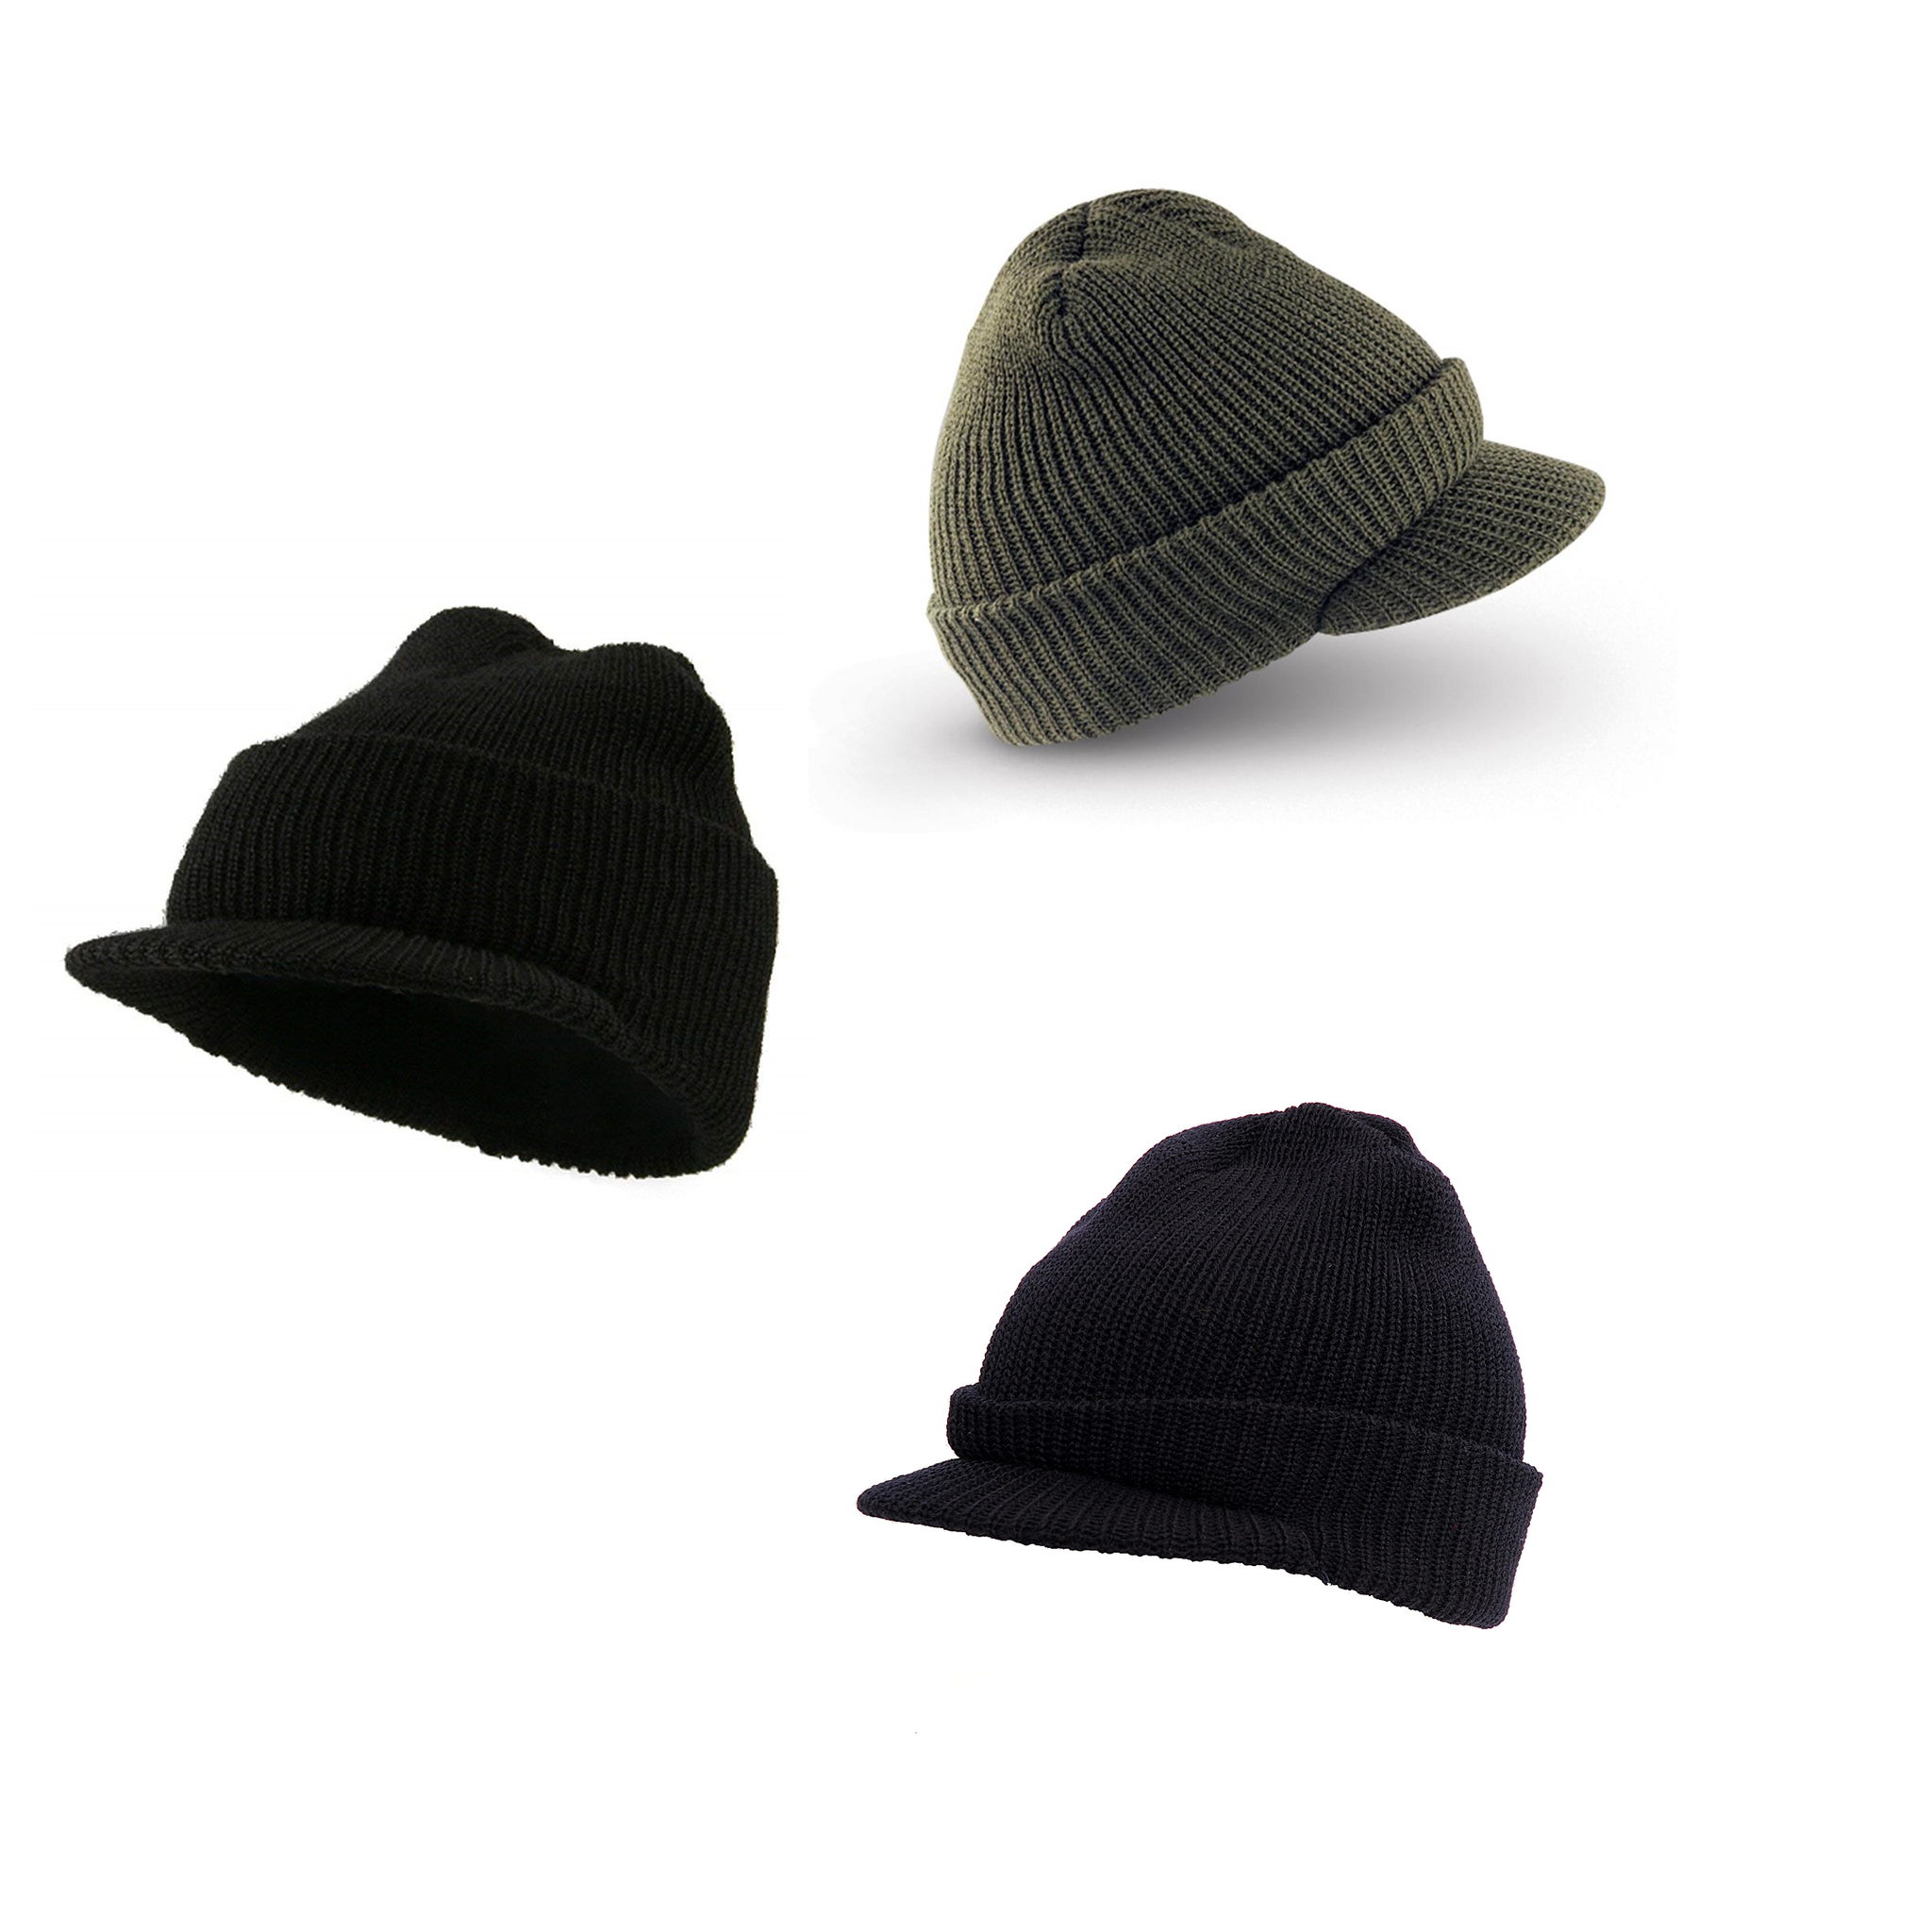 c934e3107 3-Pack -Pack 100% Wool Military Jeep Cap, Black, Navy, OD, One Size ...